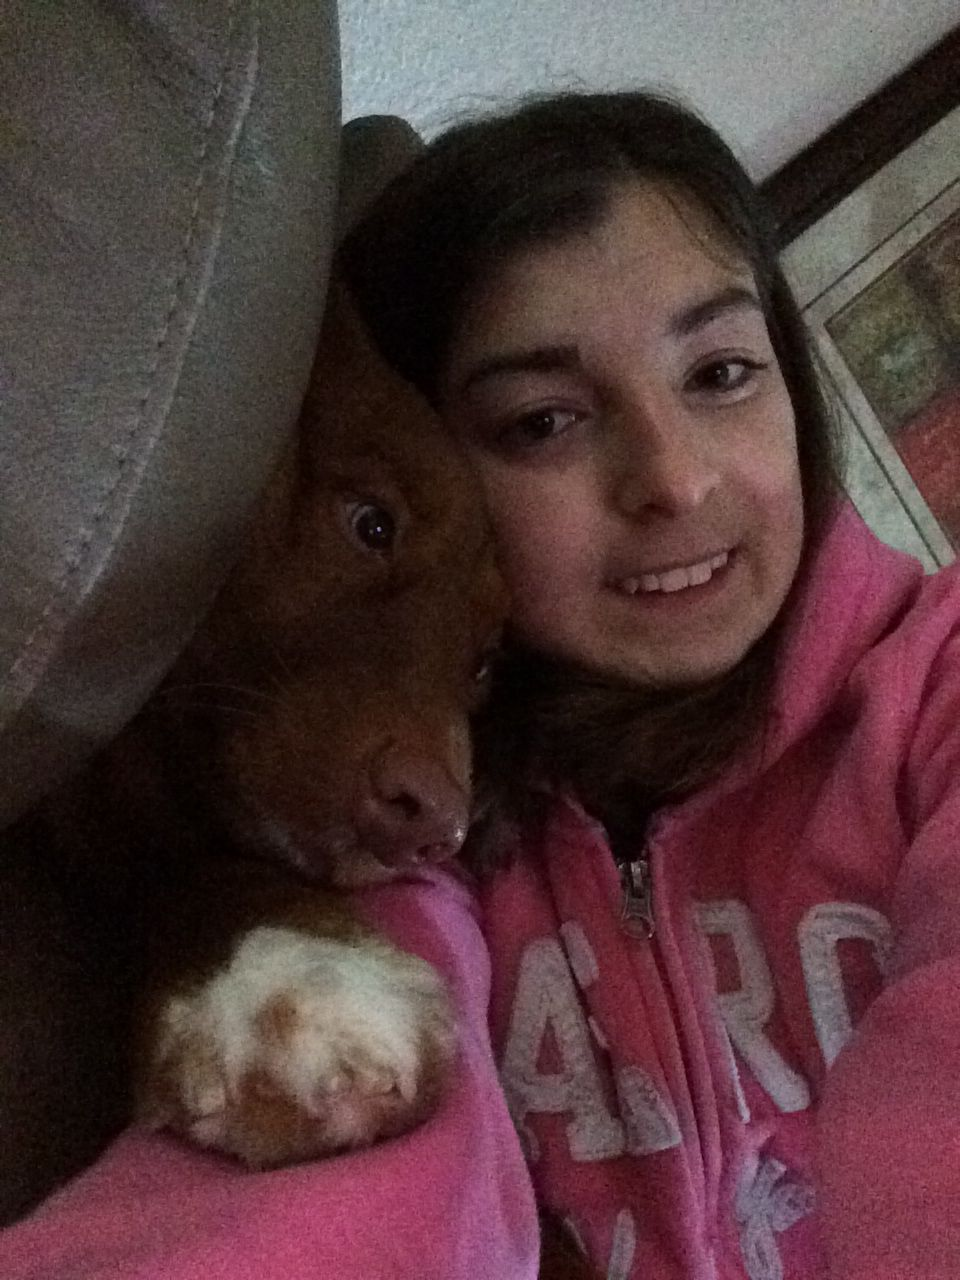 Me and my dog max